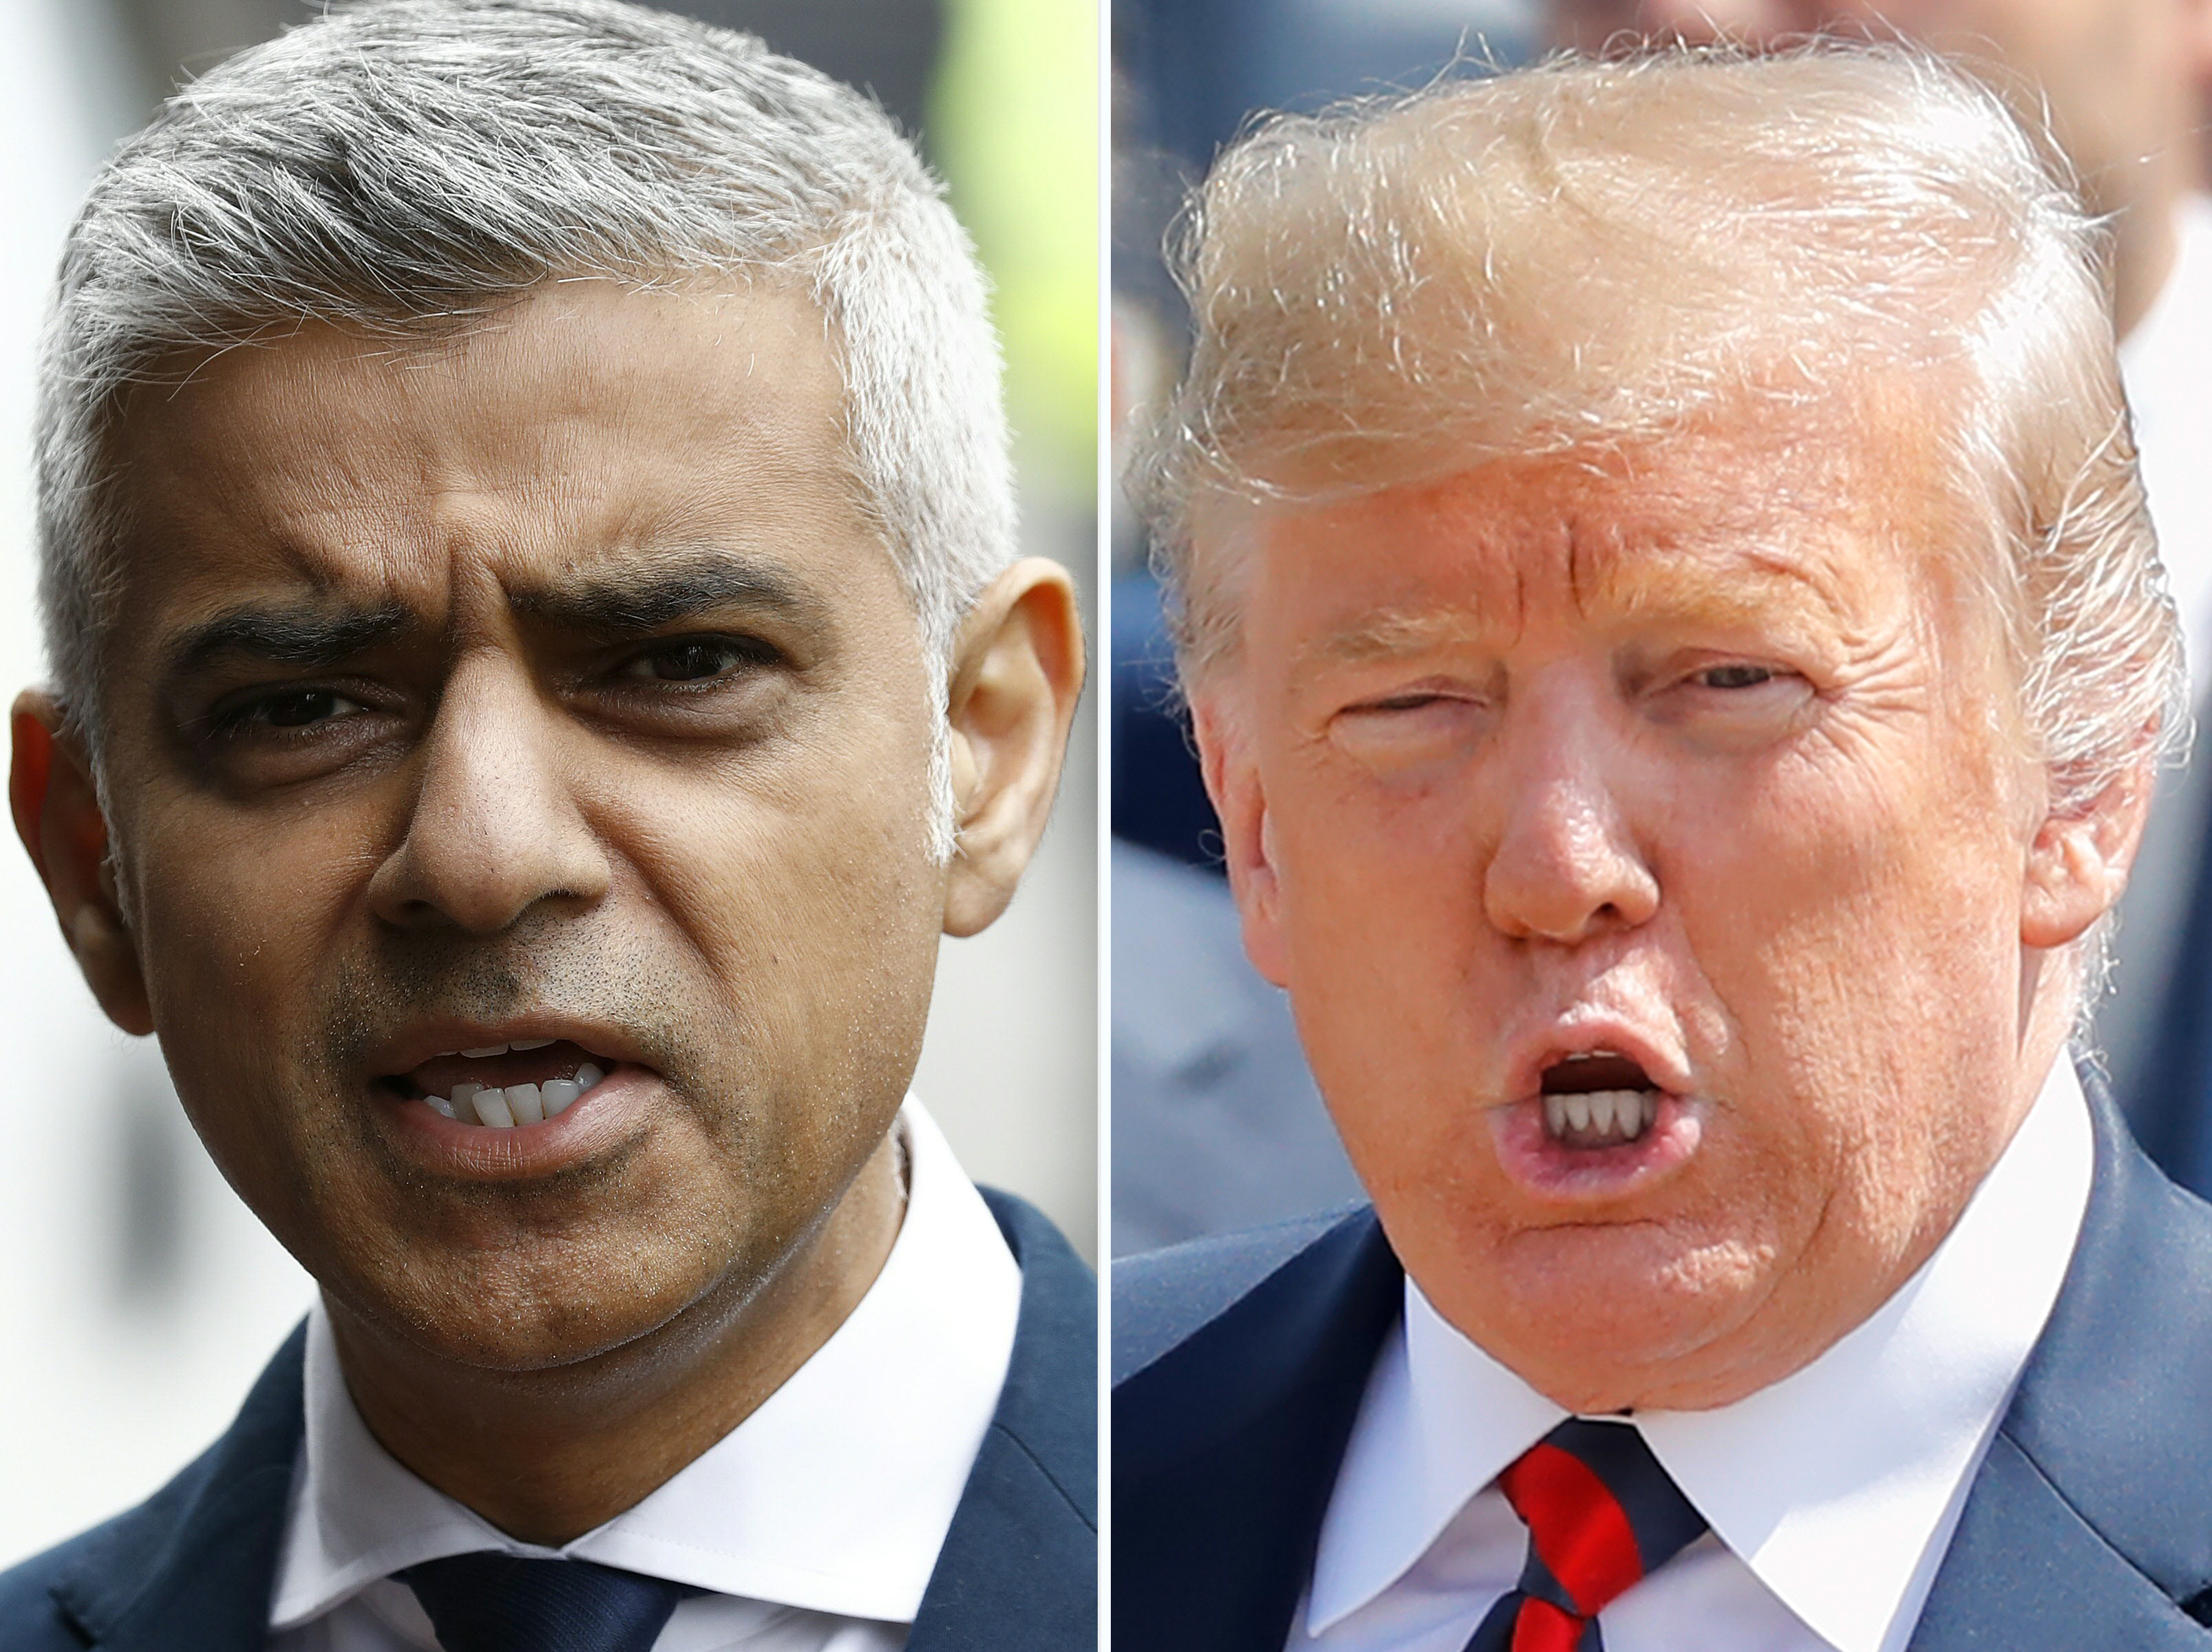 This combination of files pictures created in London on July 13, 2018 shows Mayor of London Sadiq Khan (L) after visiting Borough High Street in London on June 5, 2017 and US President Donald Trump (R) gesturing as he arrives at London Stansted Airport for a UK visit on July 12, 2018.